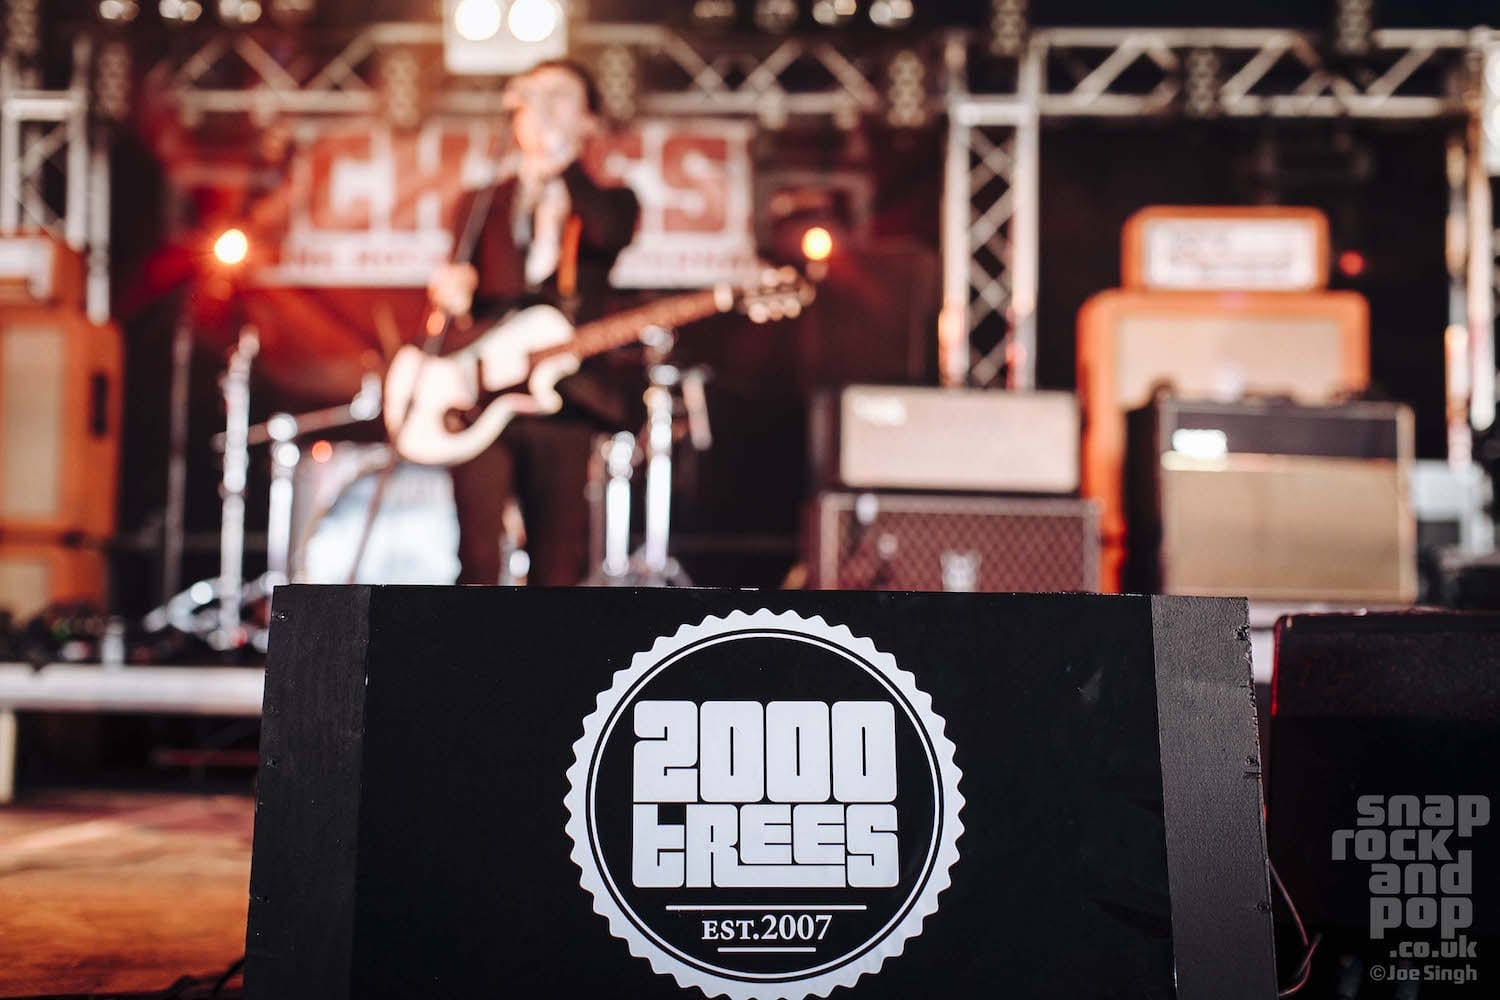 10 Acts To Catch At 2000trees 2016